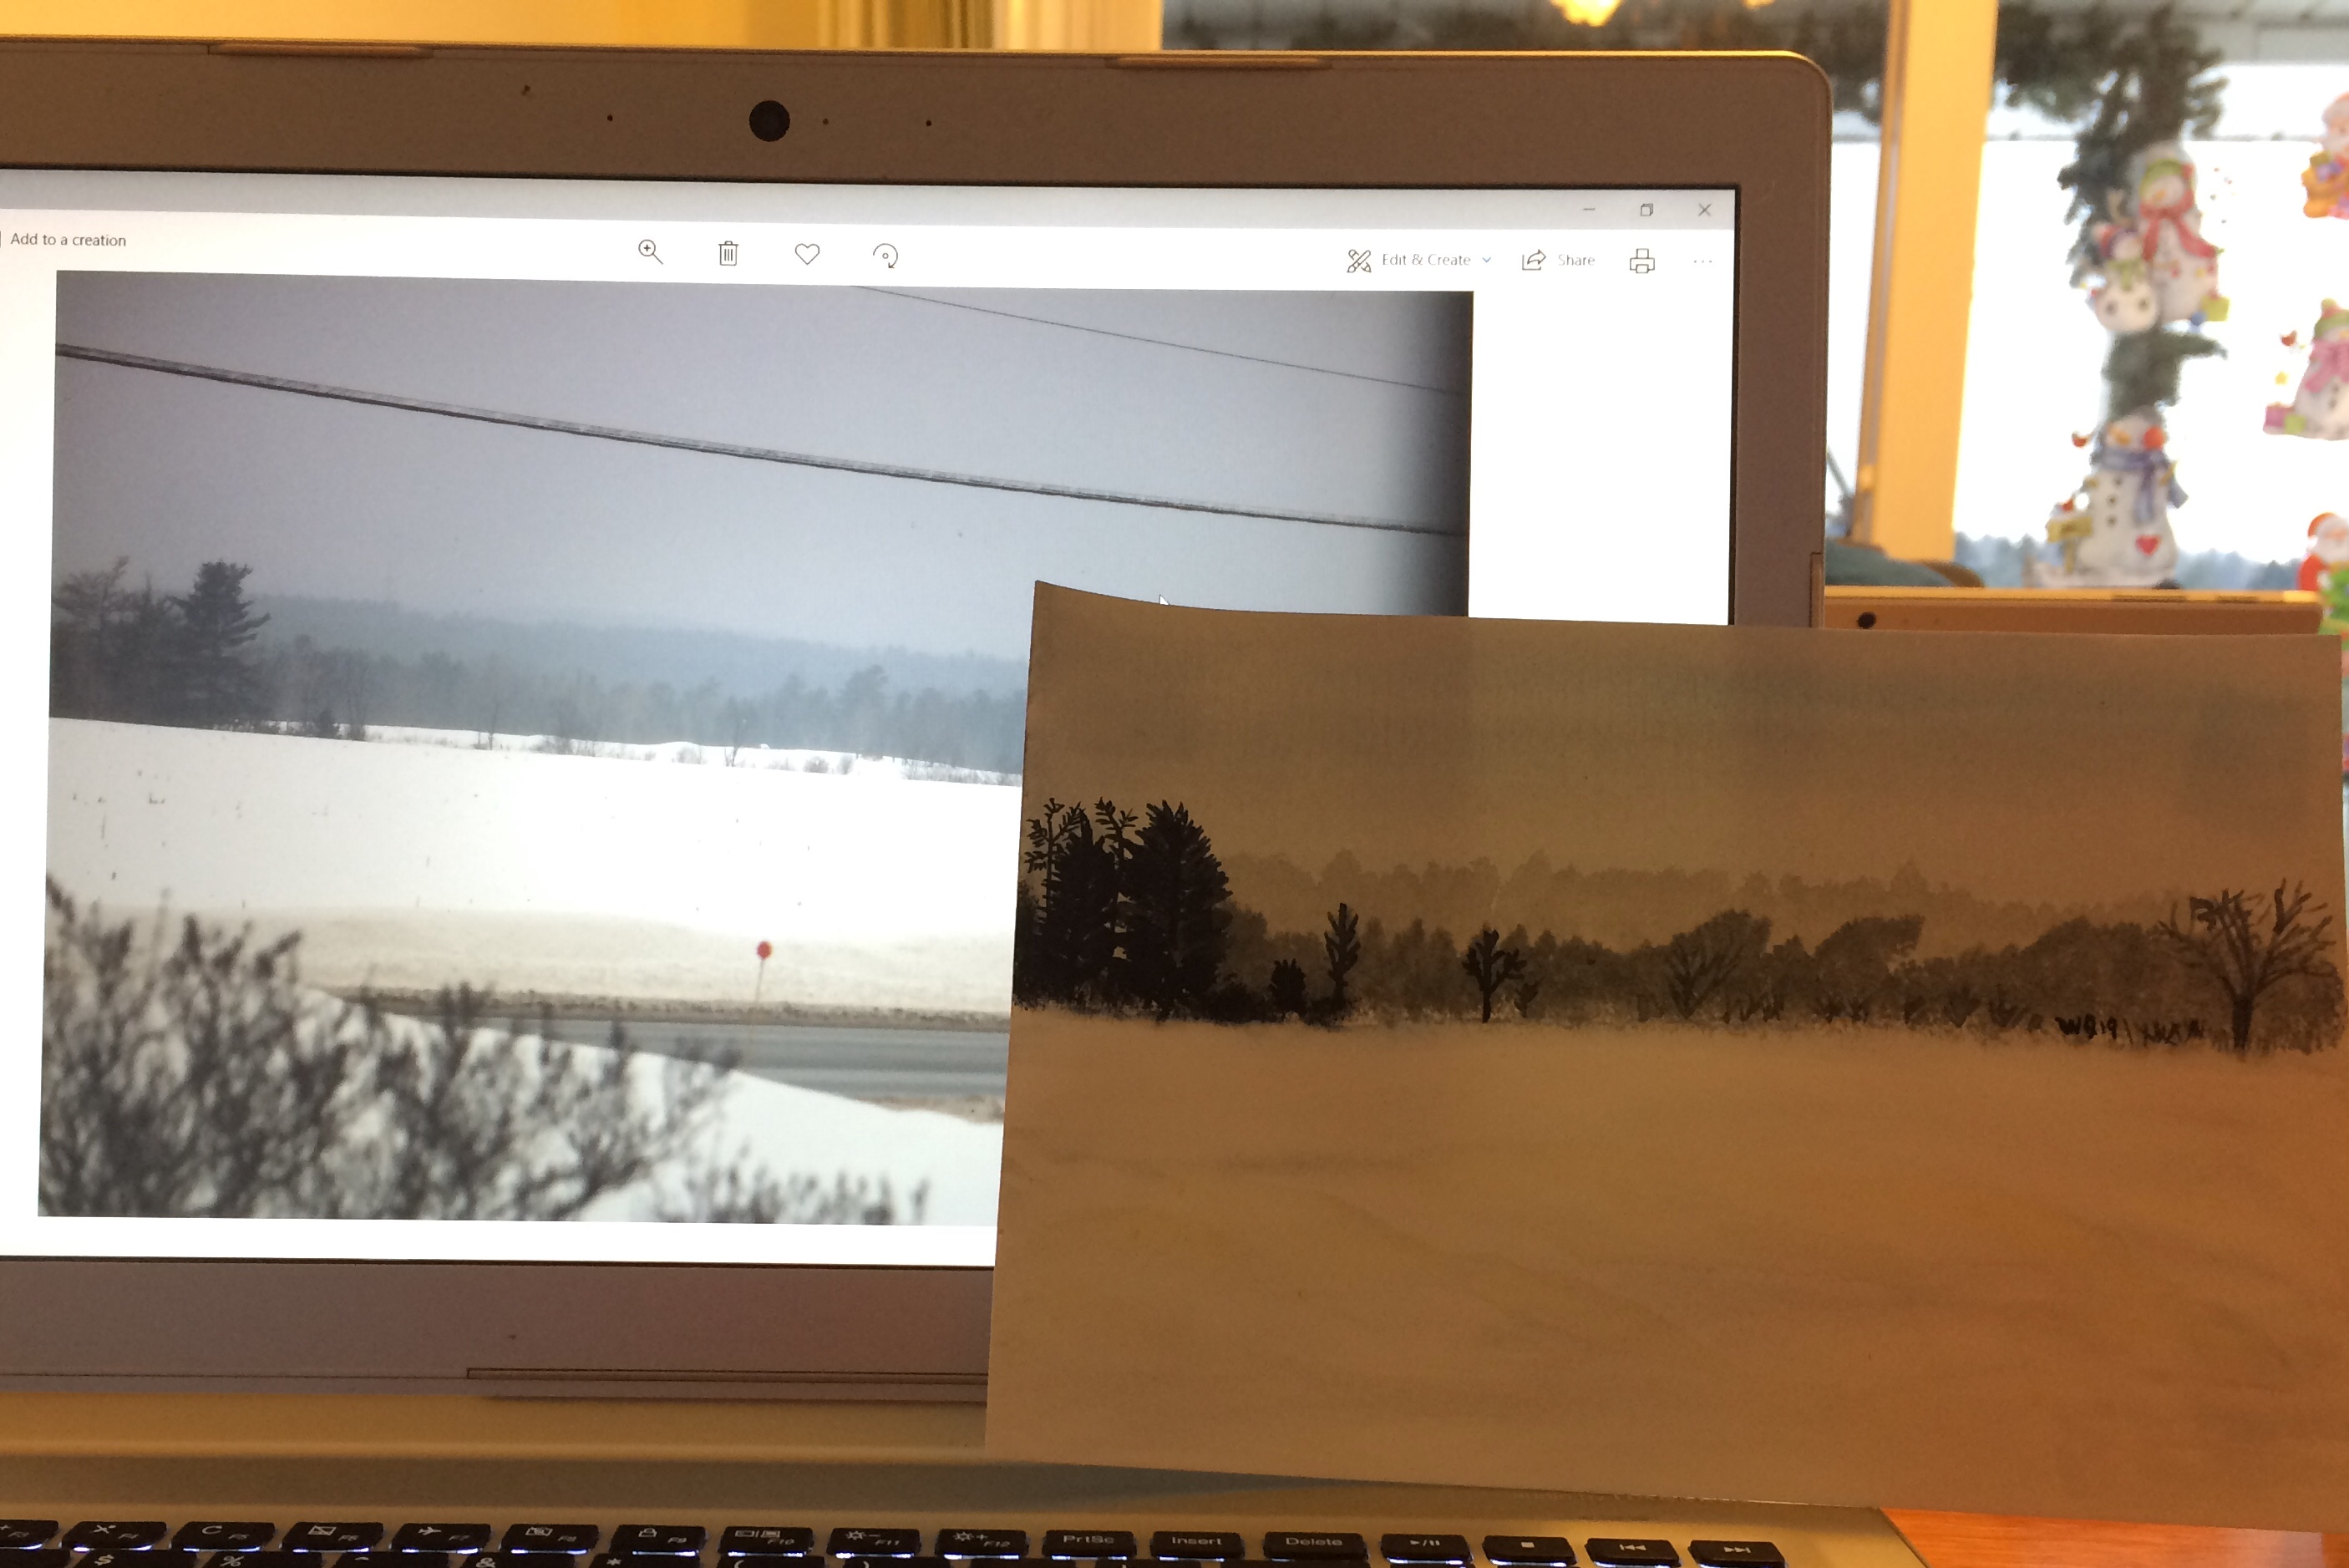 landscape photo of trees and a field of snow is displayed on a laptop screen with a watercolour painting of the photo.